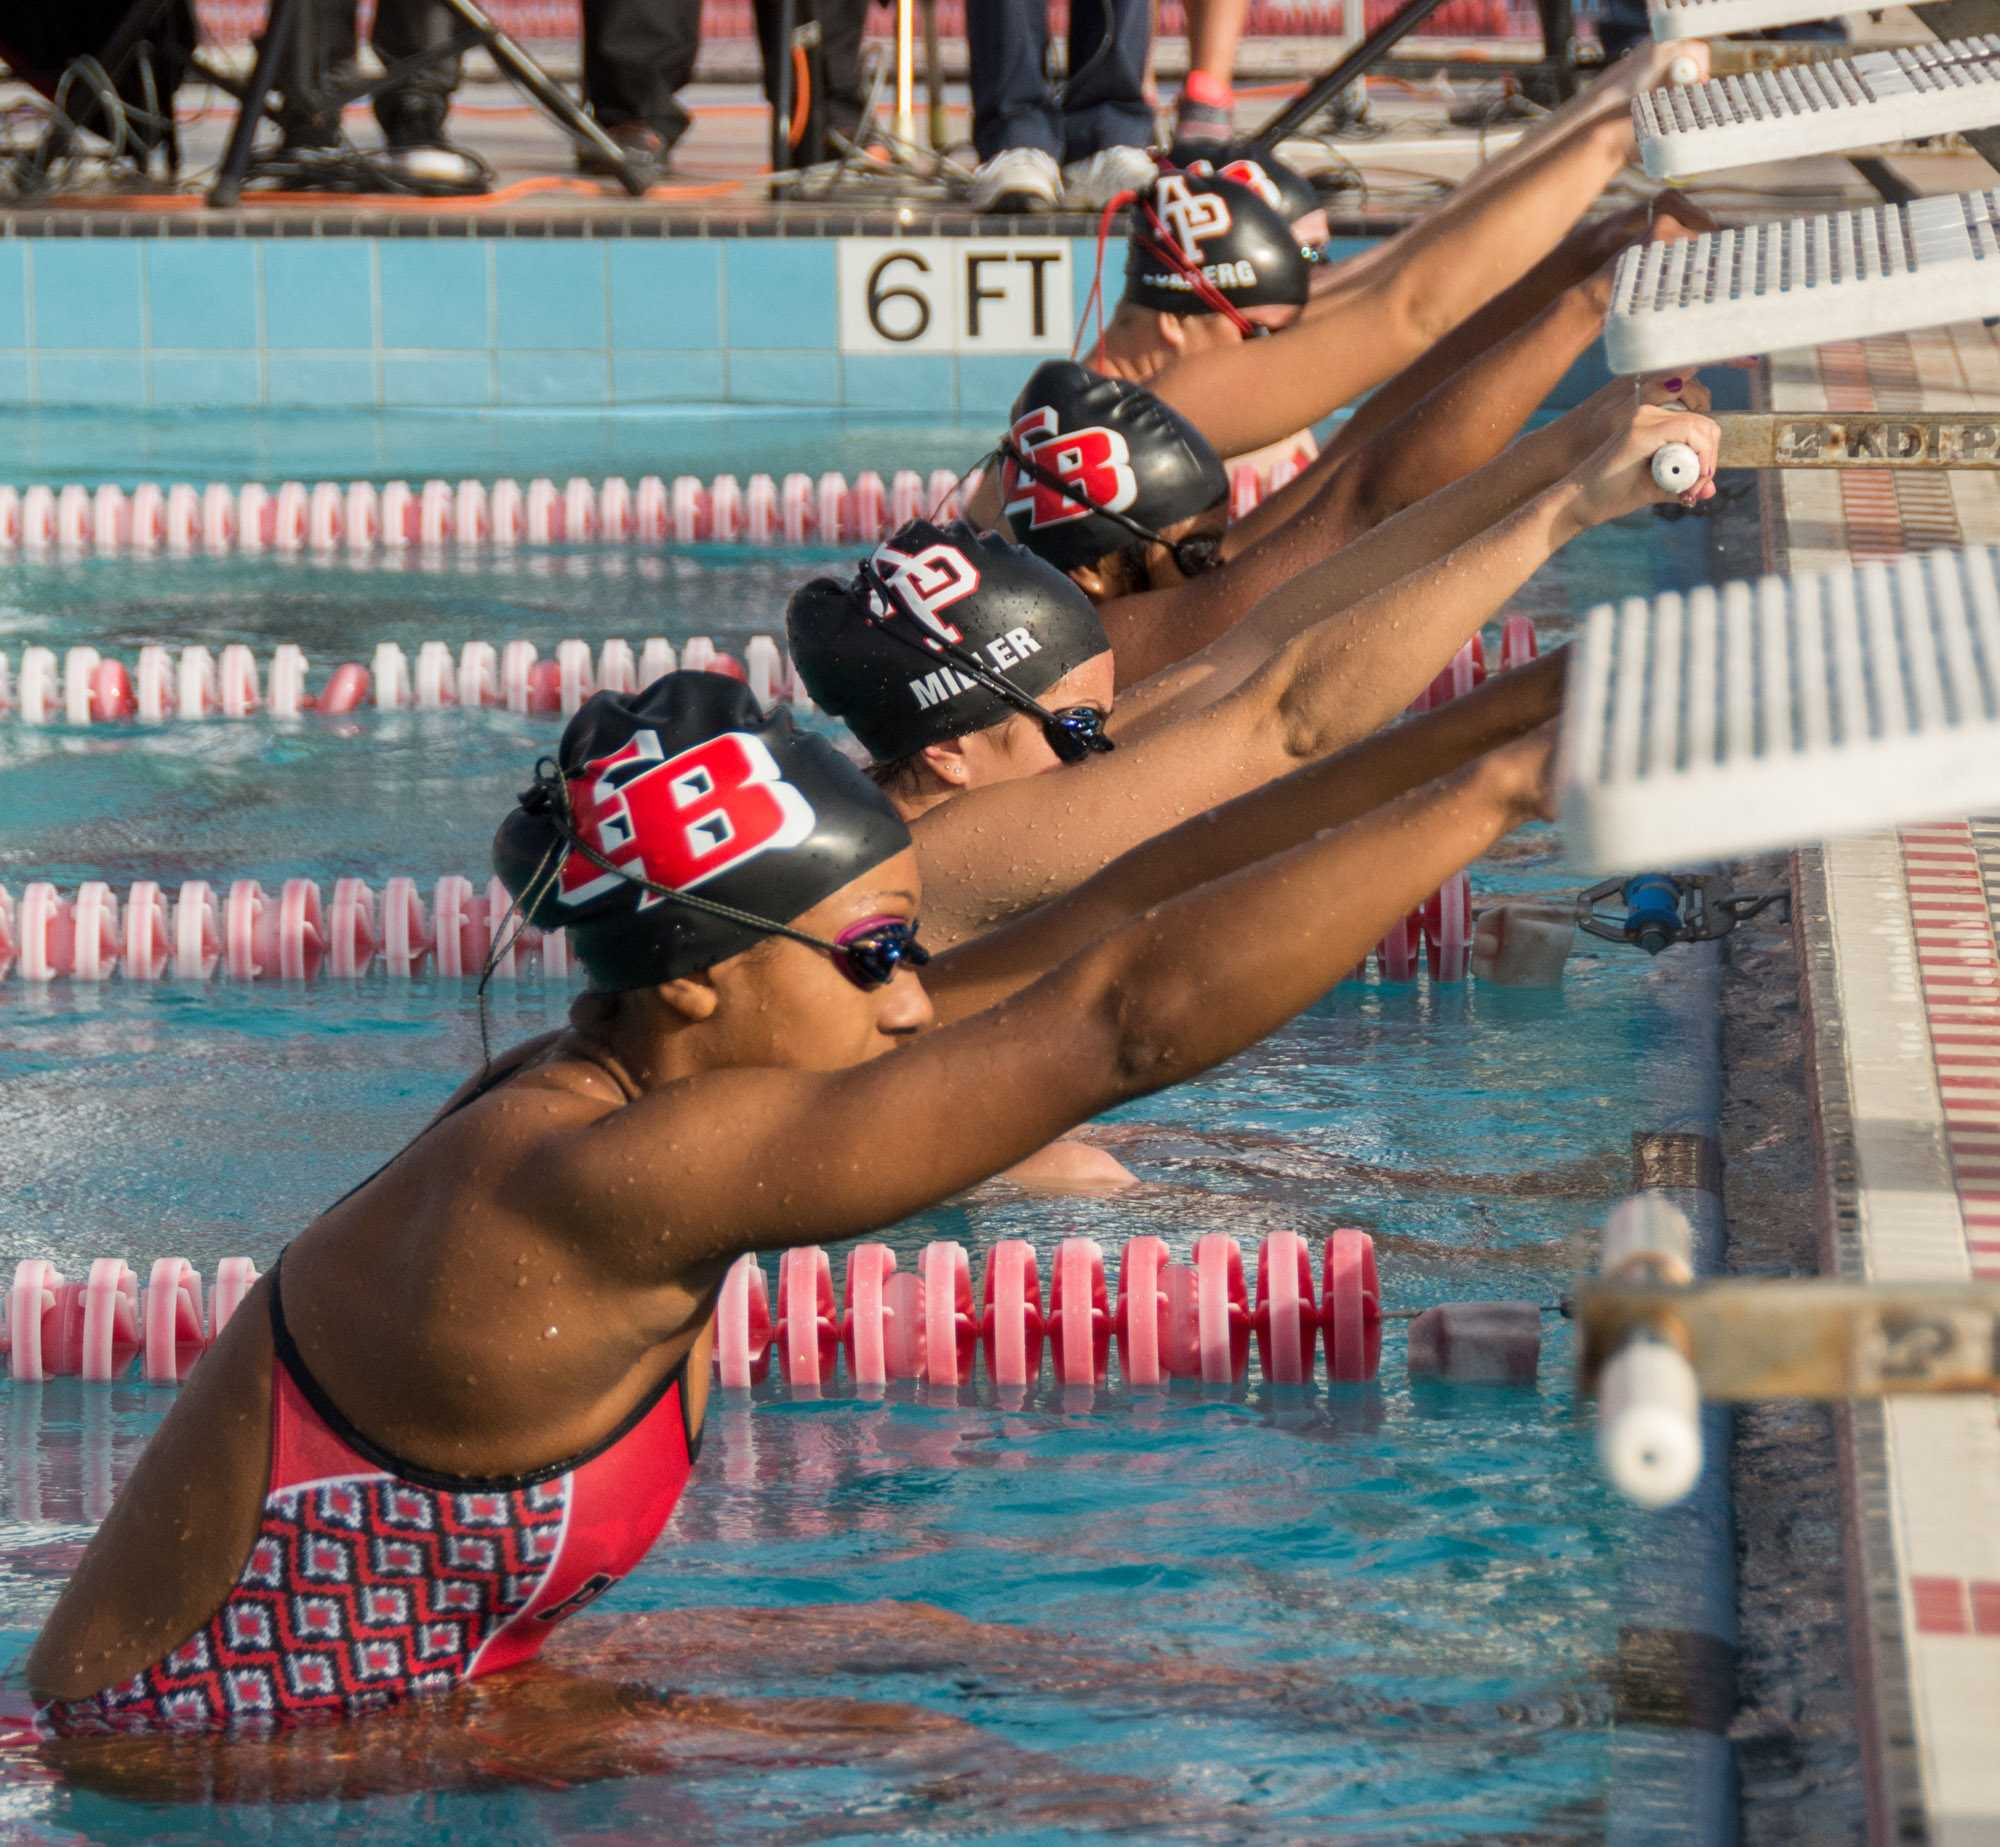 The CSUEB women's swimming team participate in an event at Pioneer Pool in Hayward on senior day.